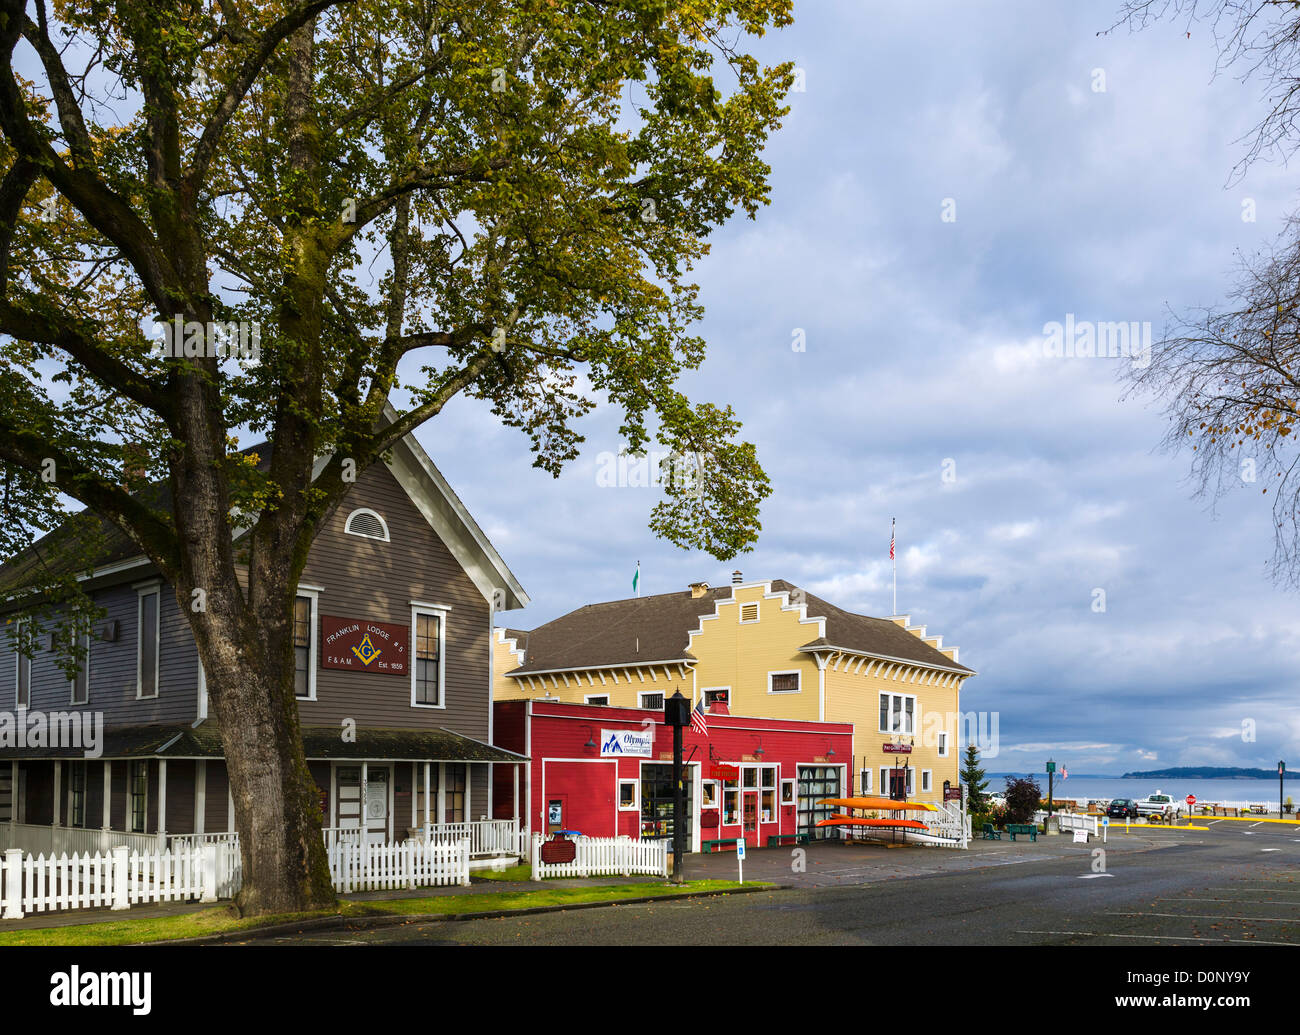 NE Rainier Avenue (old Main Street), Port Gamble, Olympic Peninsula, Washington, USA - Stock Image